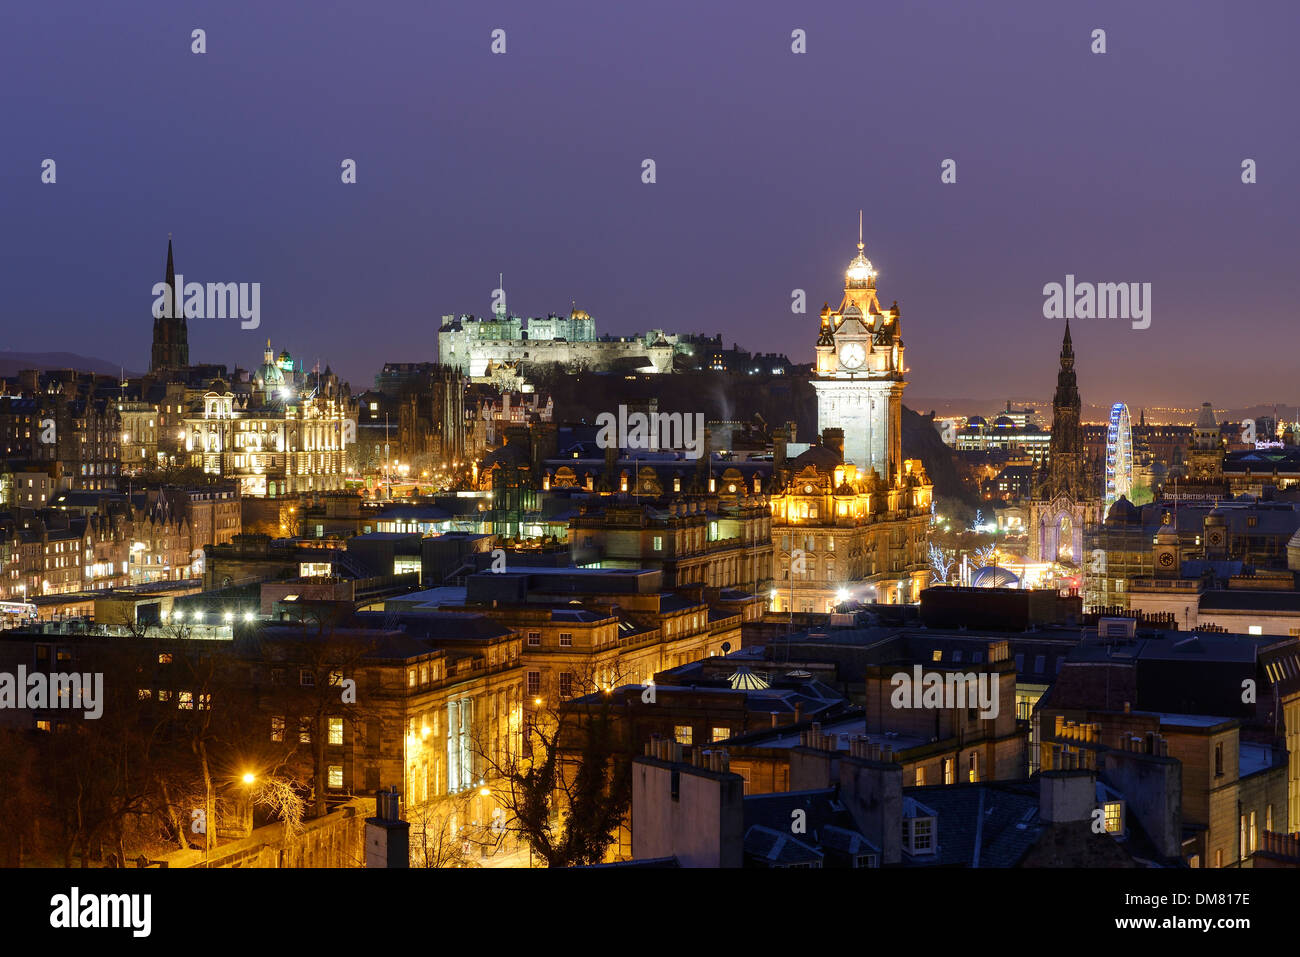 Edinburgh city centre at night viewed from Calton Hill - Stock Image